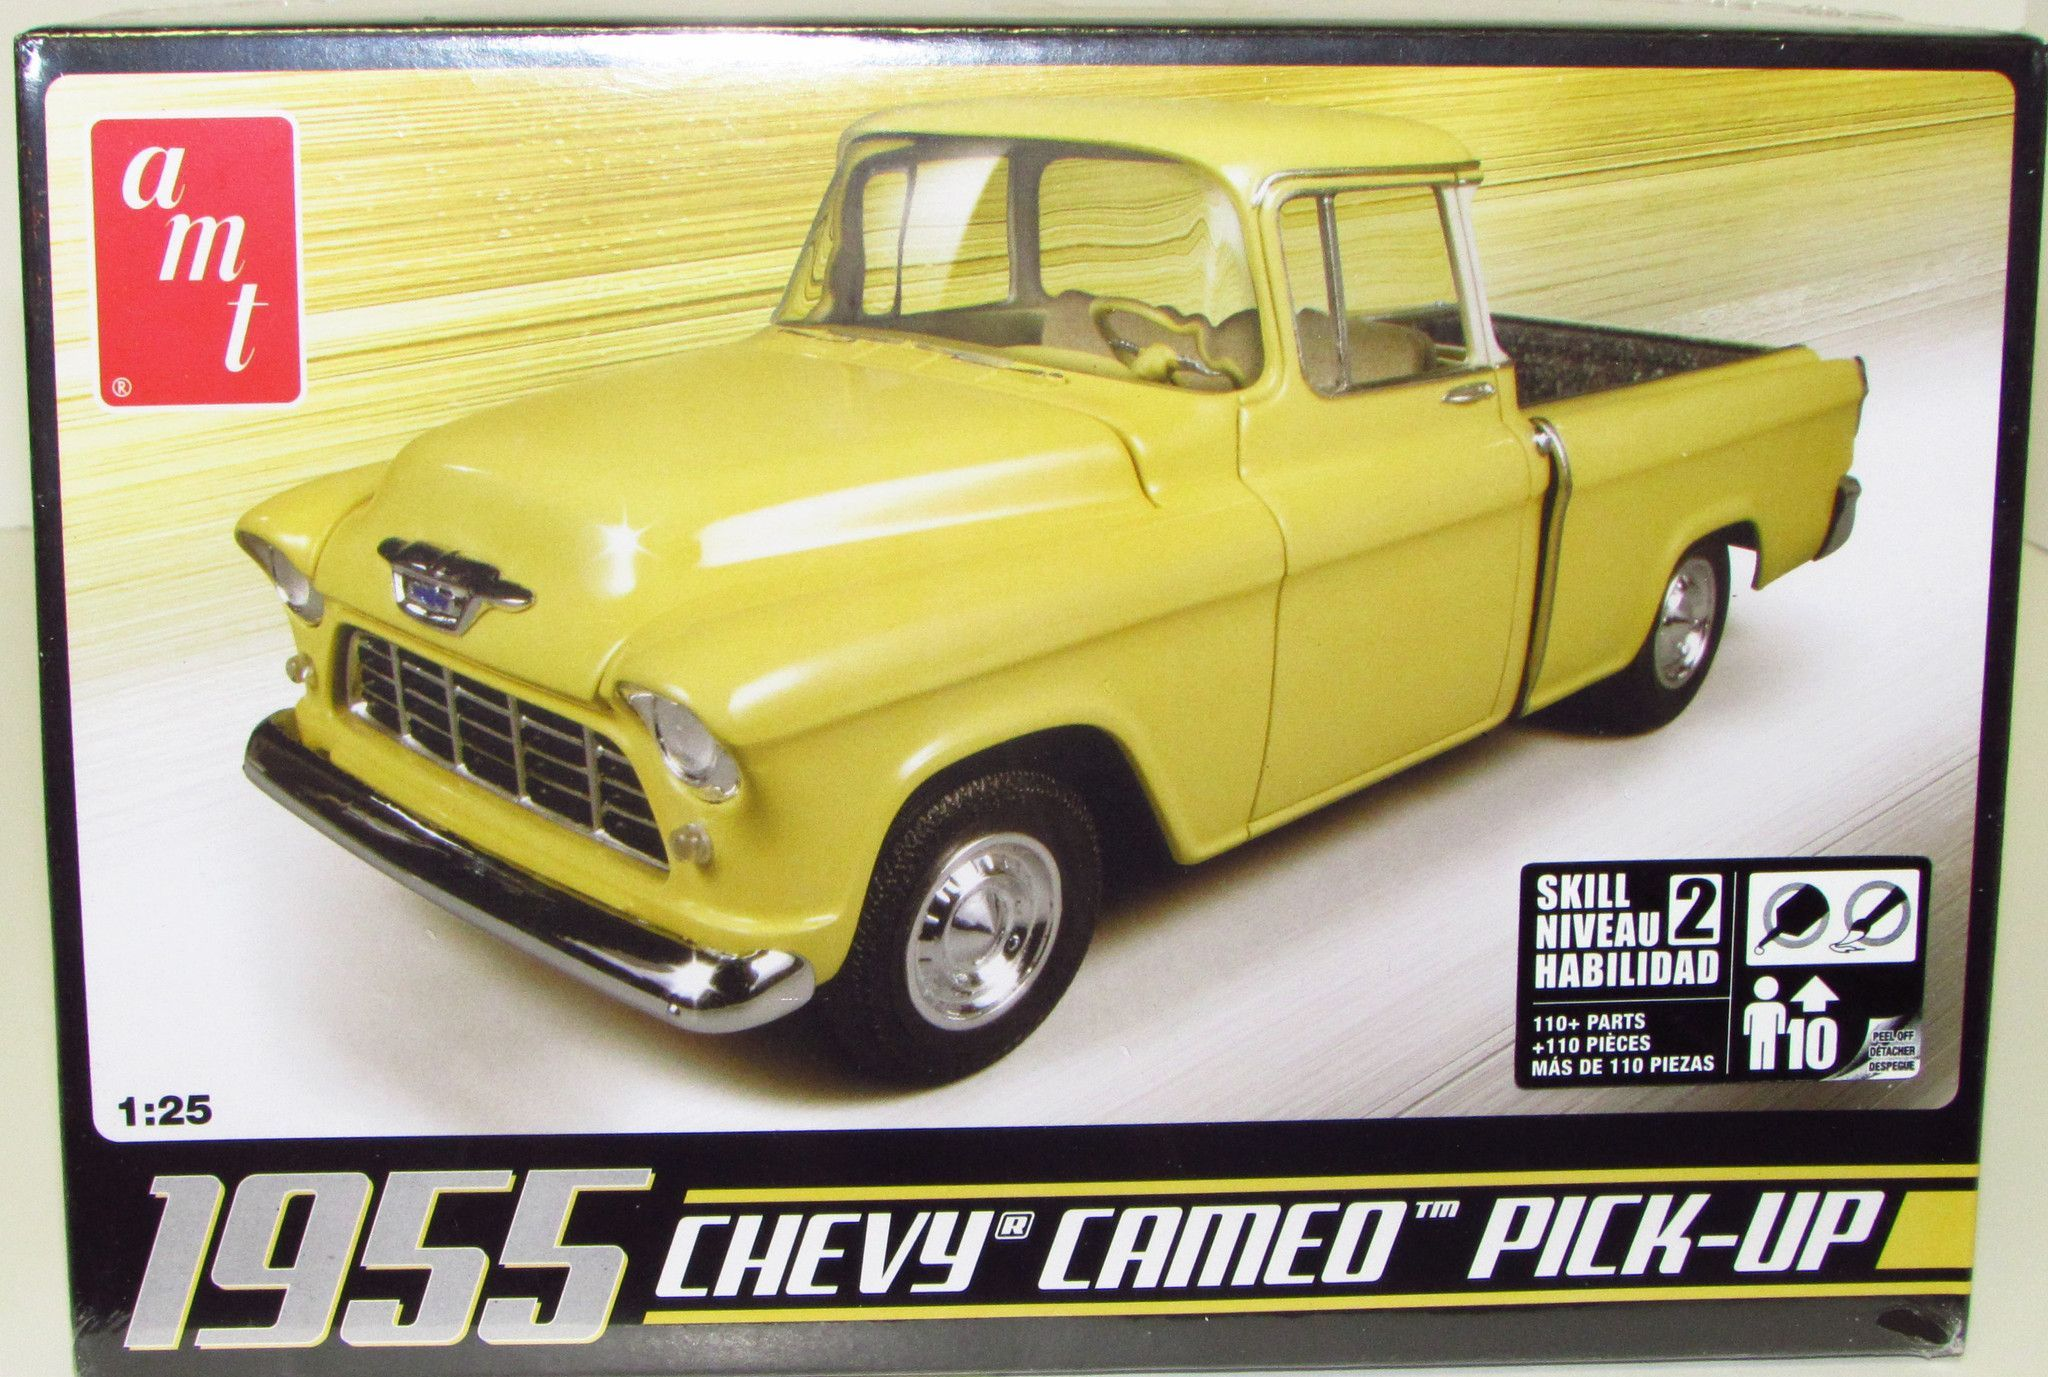 1955 chevy cameo pickup truck amt 633 1 25 scale new model kit